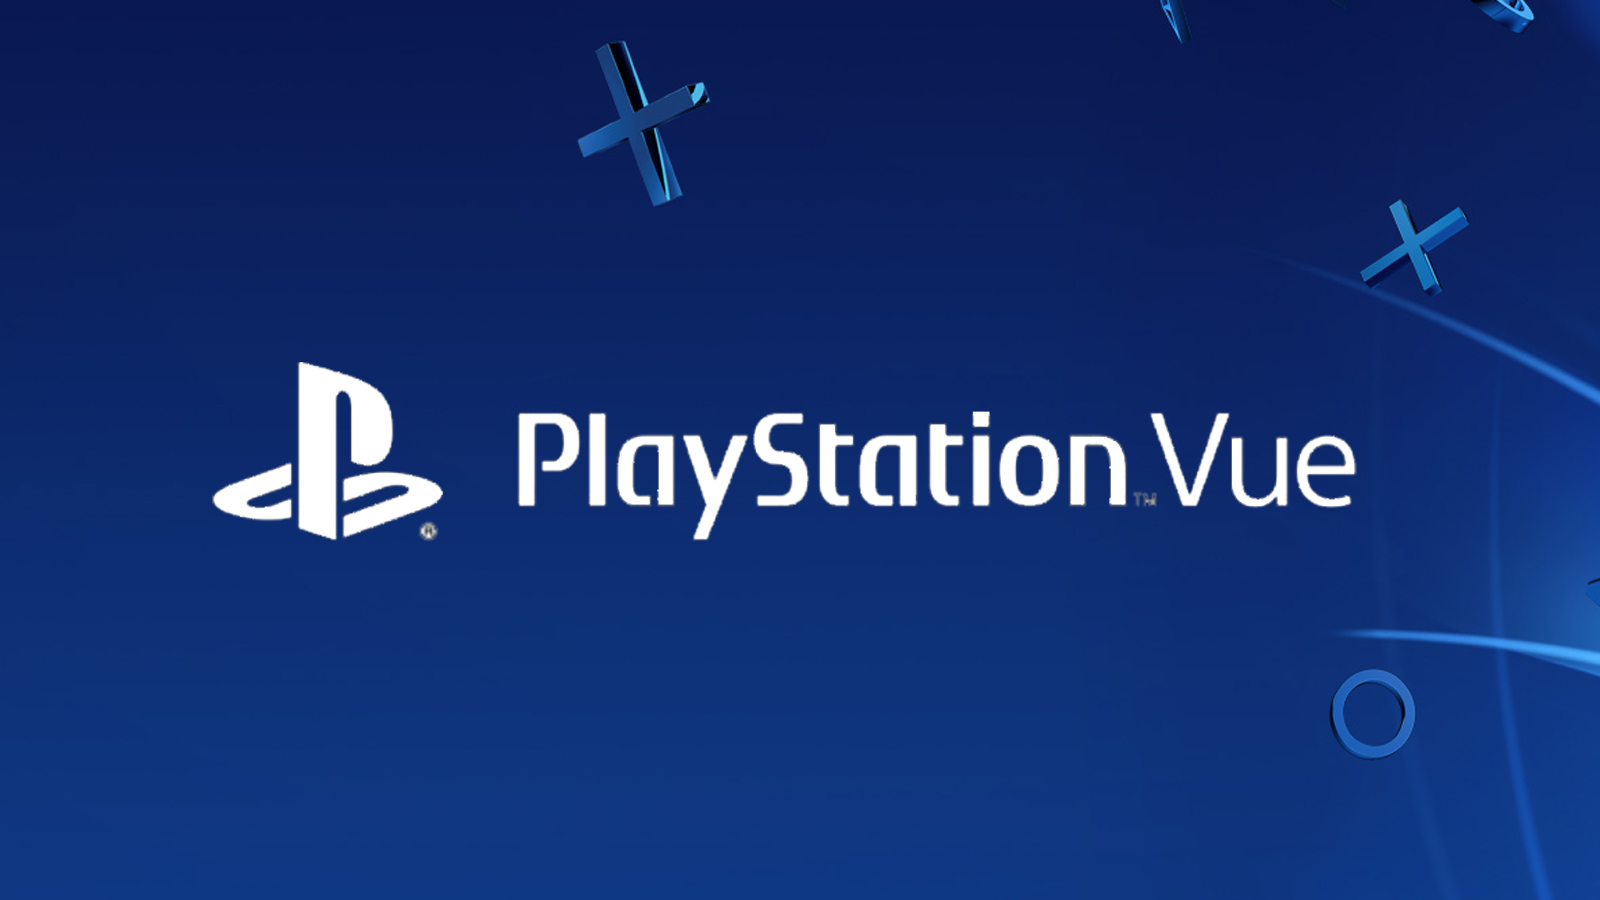 Playstation Vue Will You Get Your Local Channels If You Move The Tv Answer Man